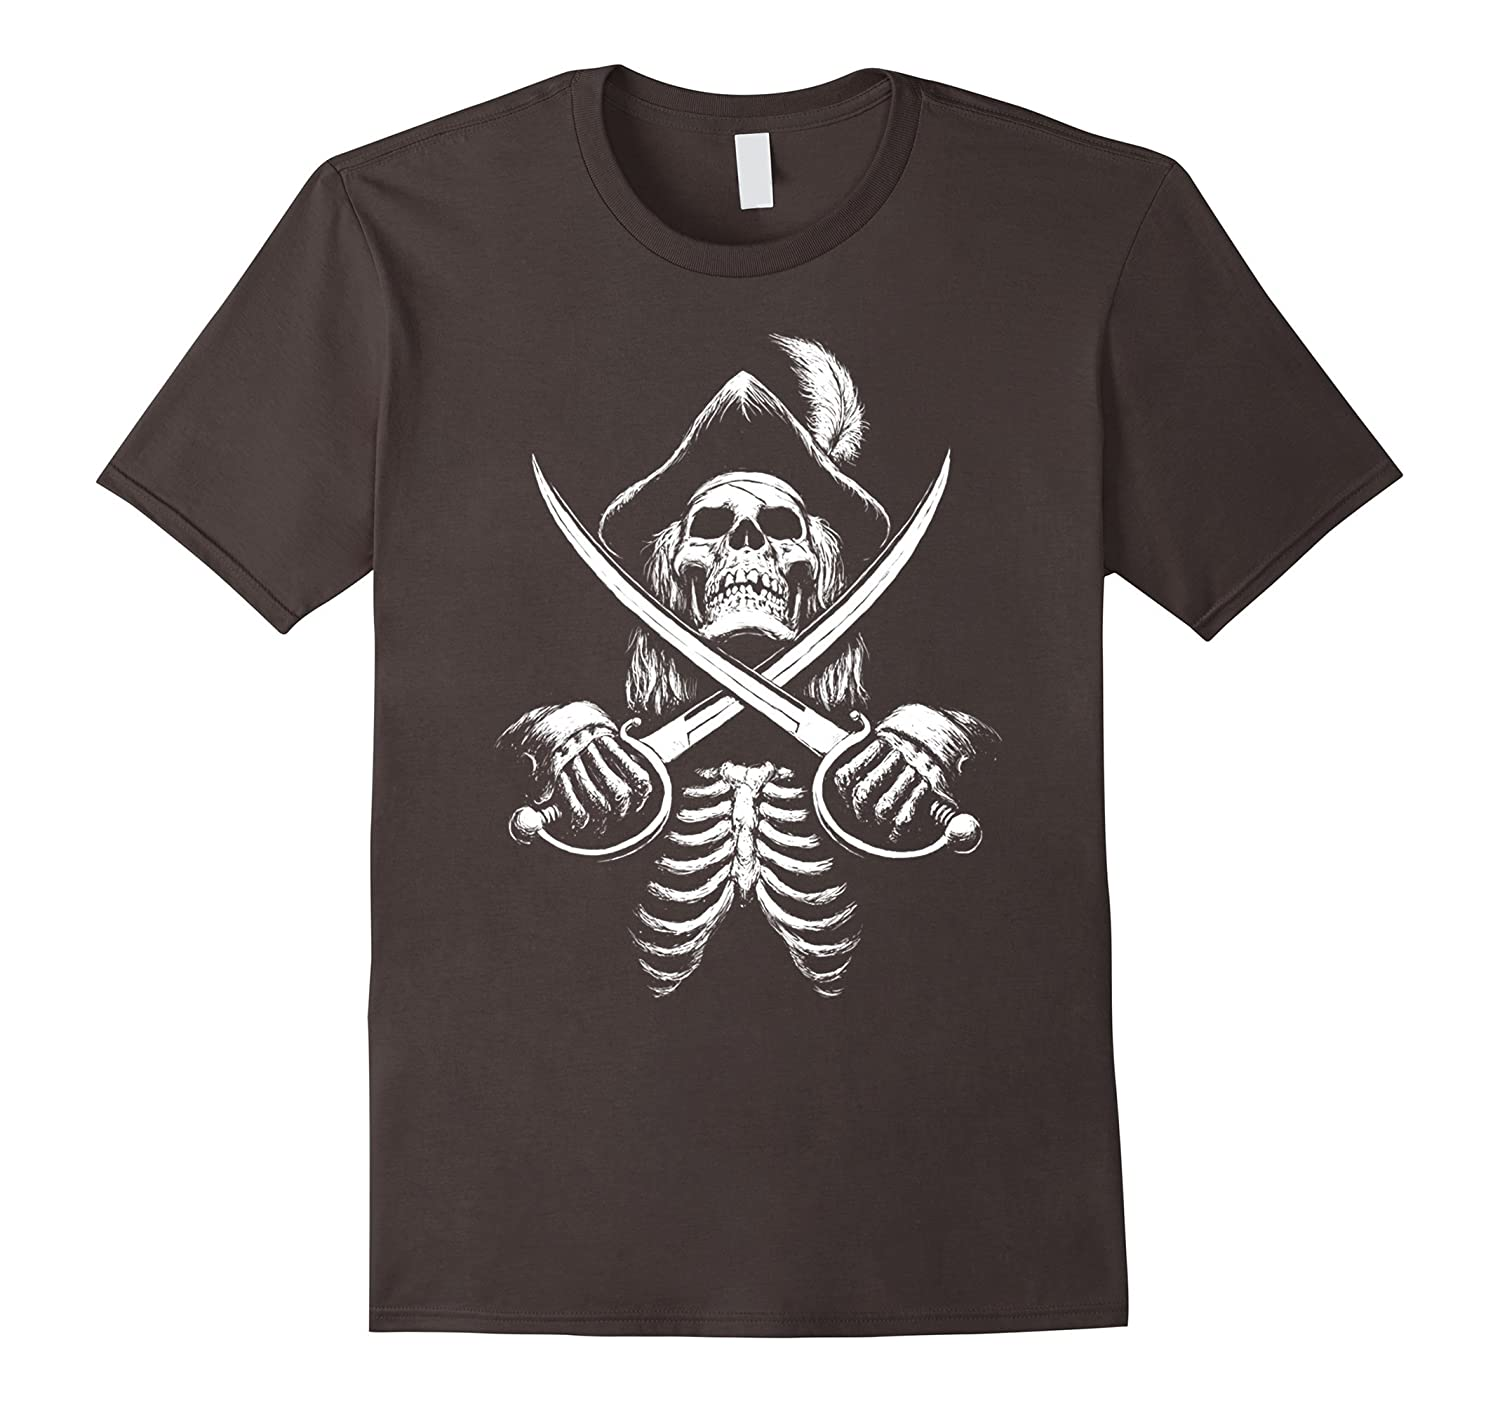 Skull pirates design t shirt 2017 skeleton shirt for T shirt design 2017